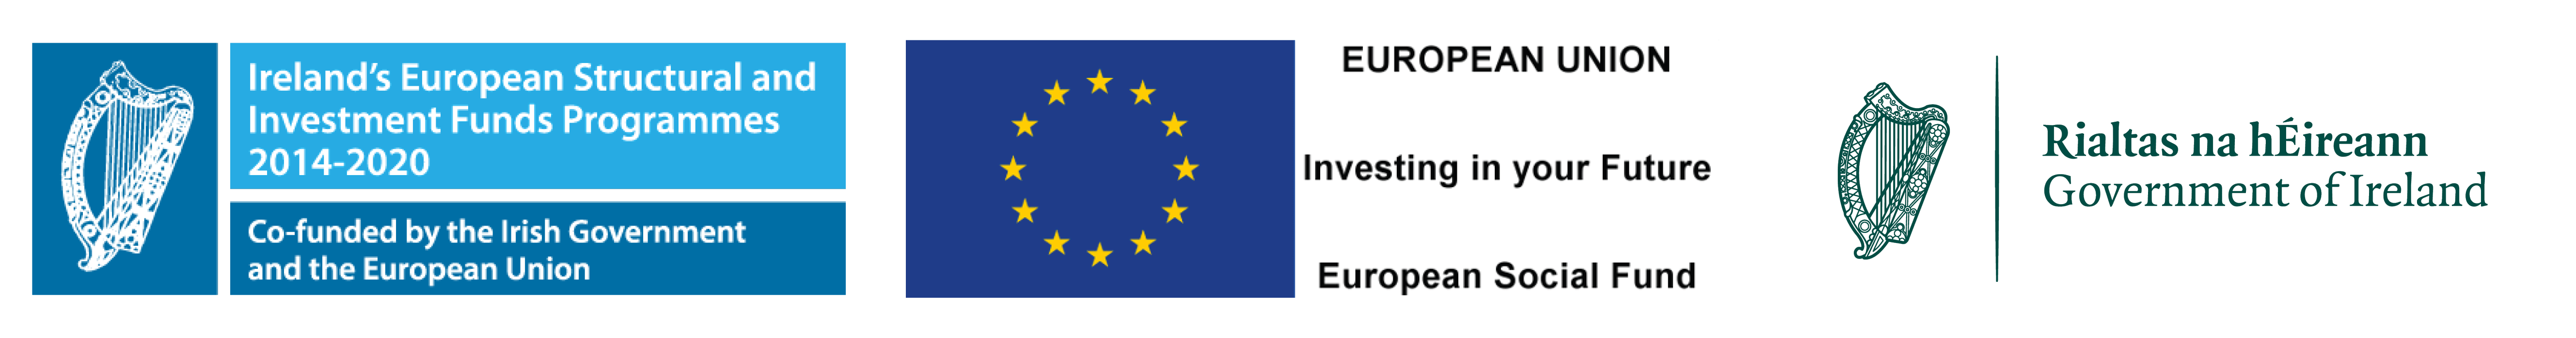 European Social Fund and Ireland's European Structural and Investments Funds Programmes